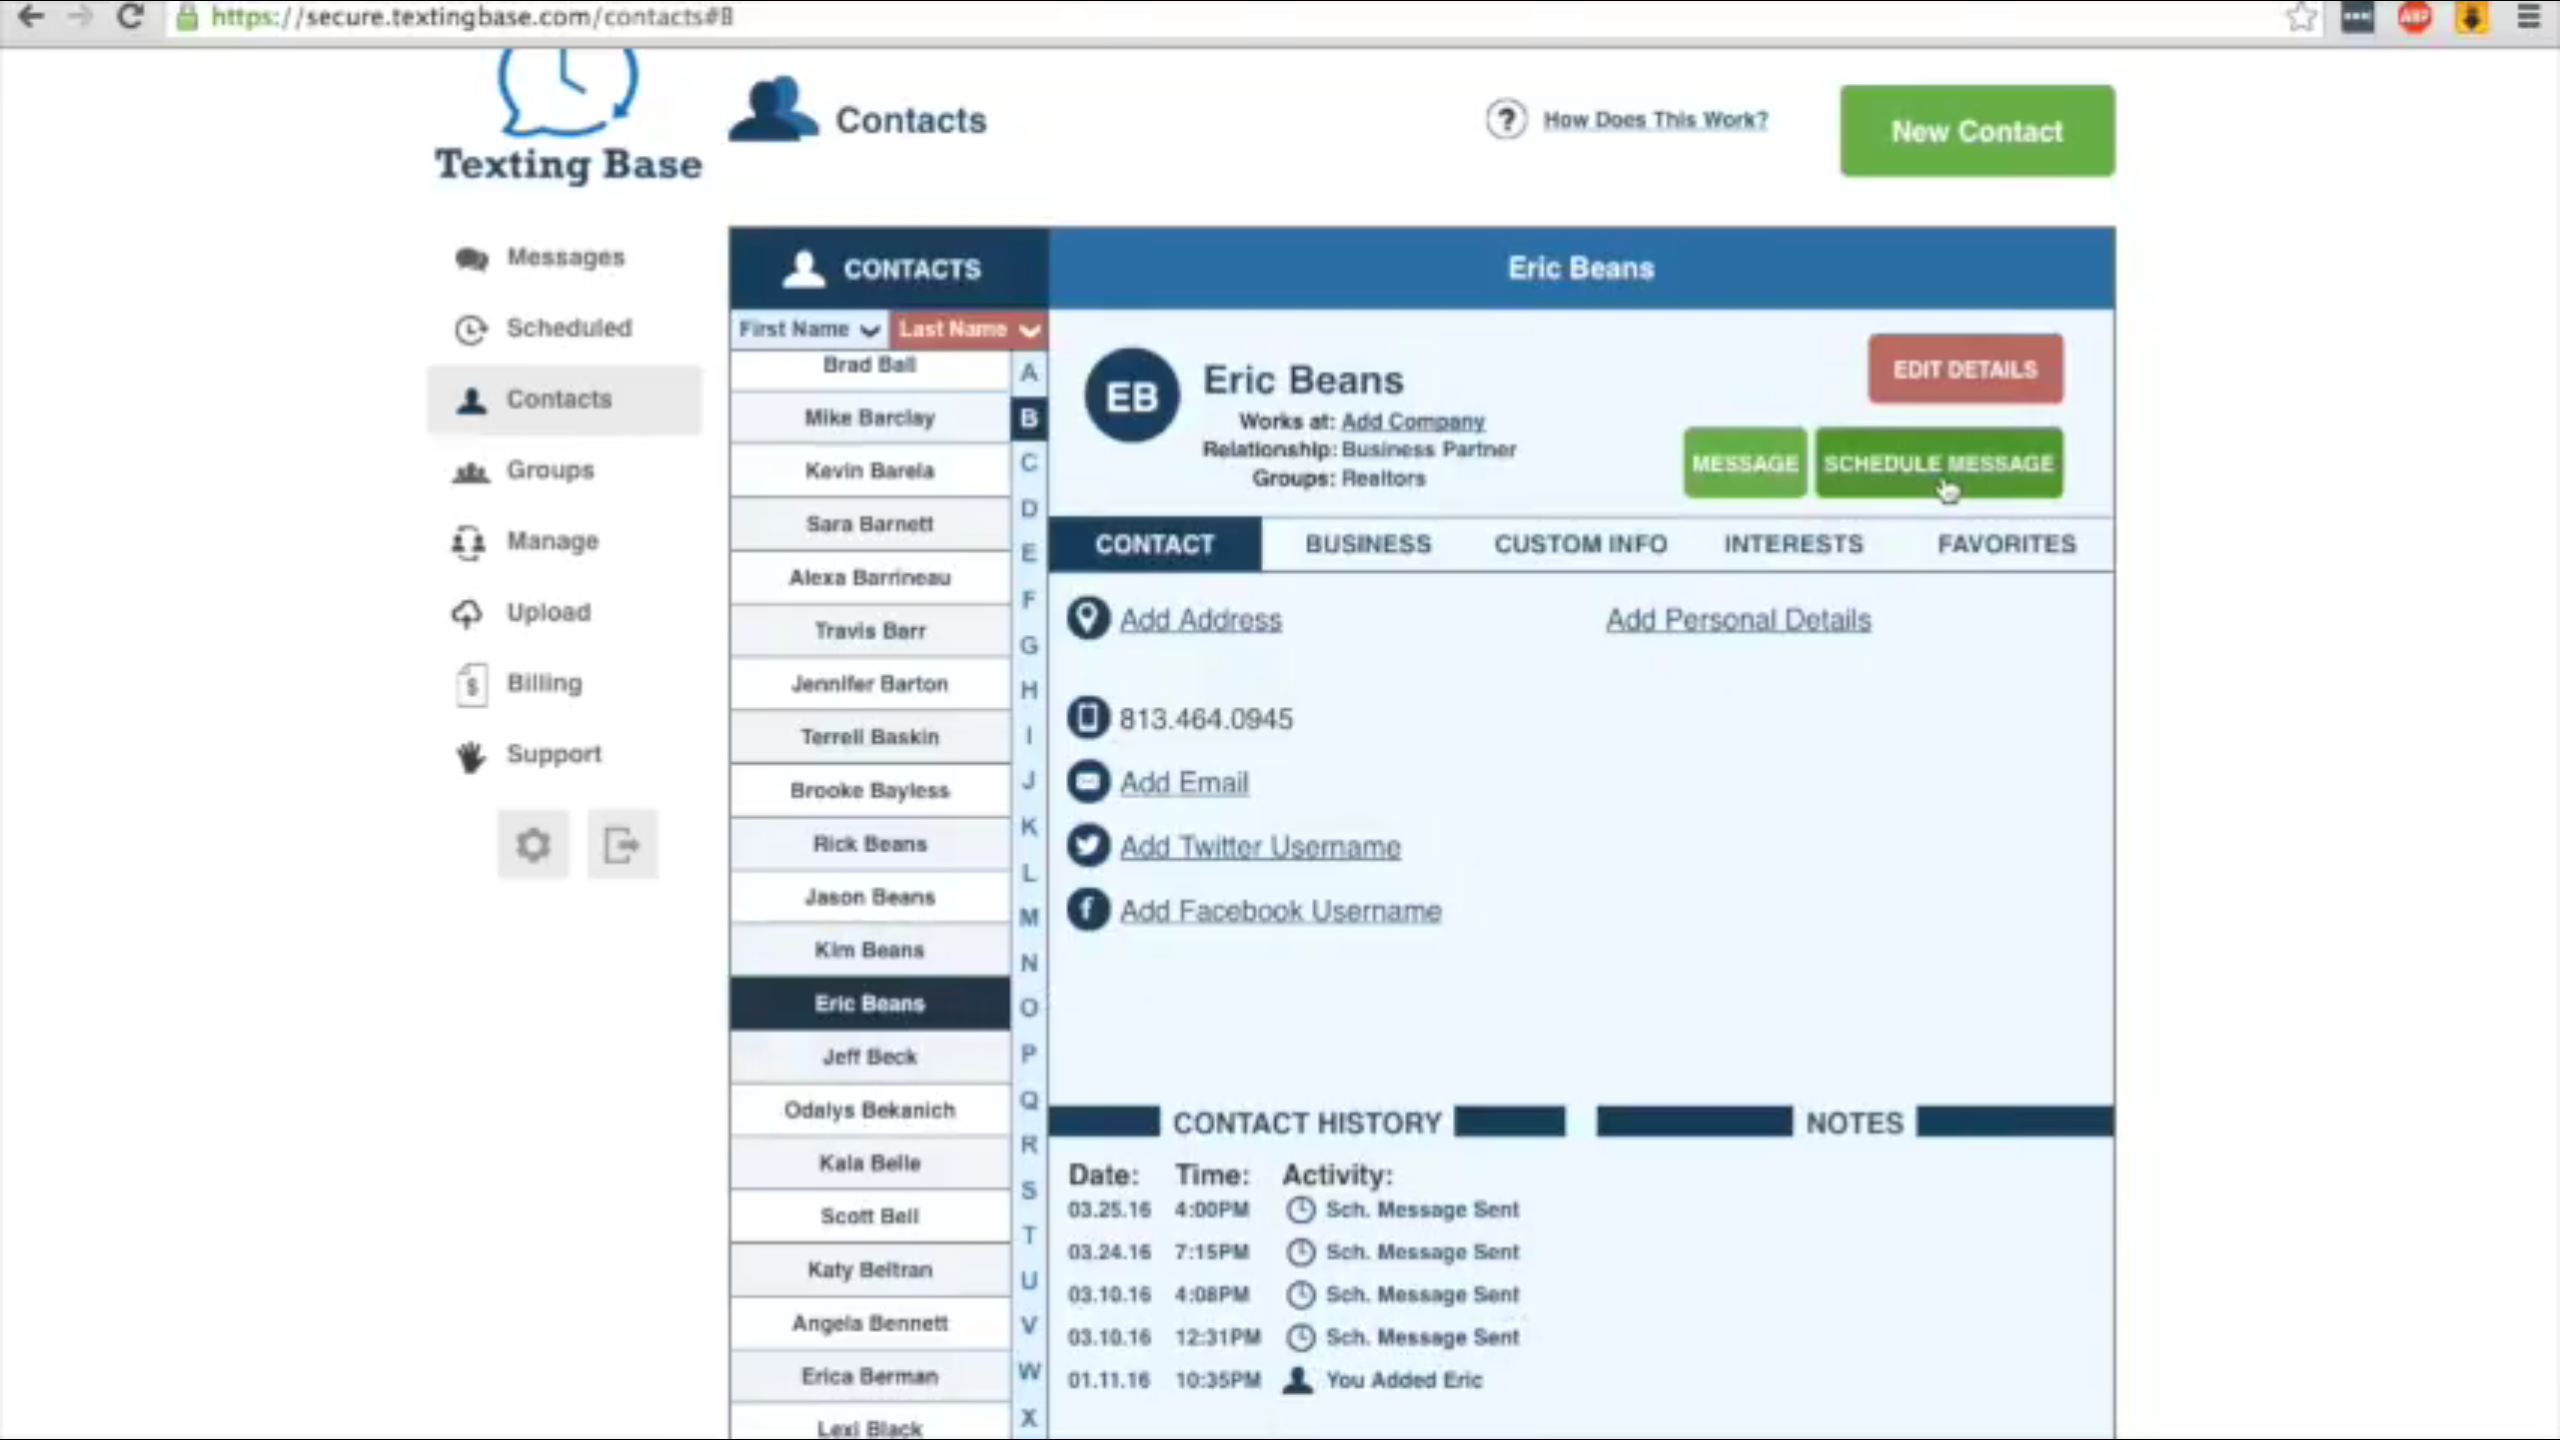 With a contact selected, full records can be viewed and edited where necessary along with the option to schedule messages